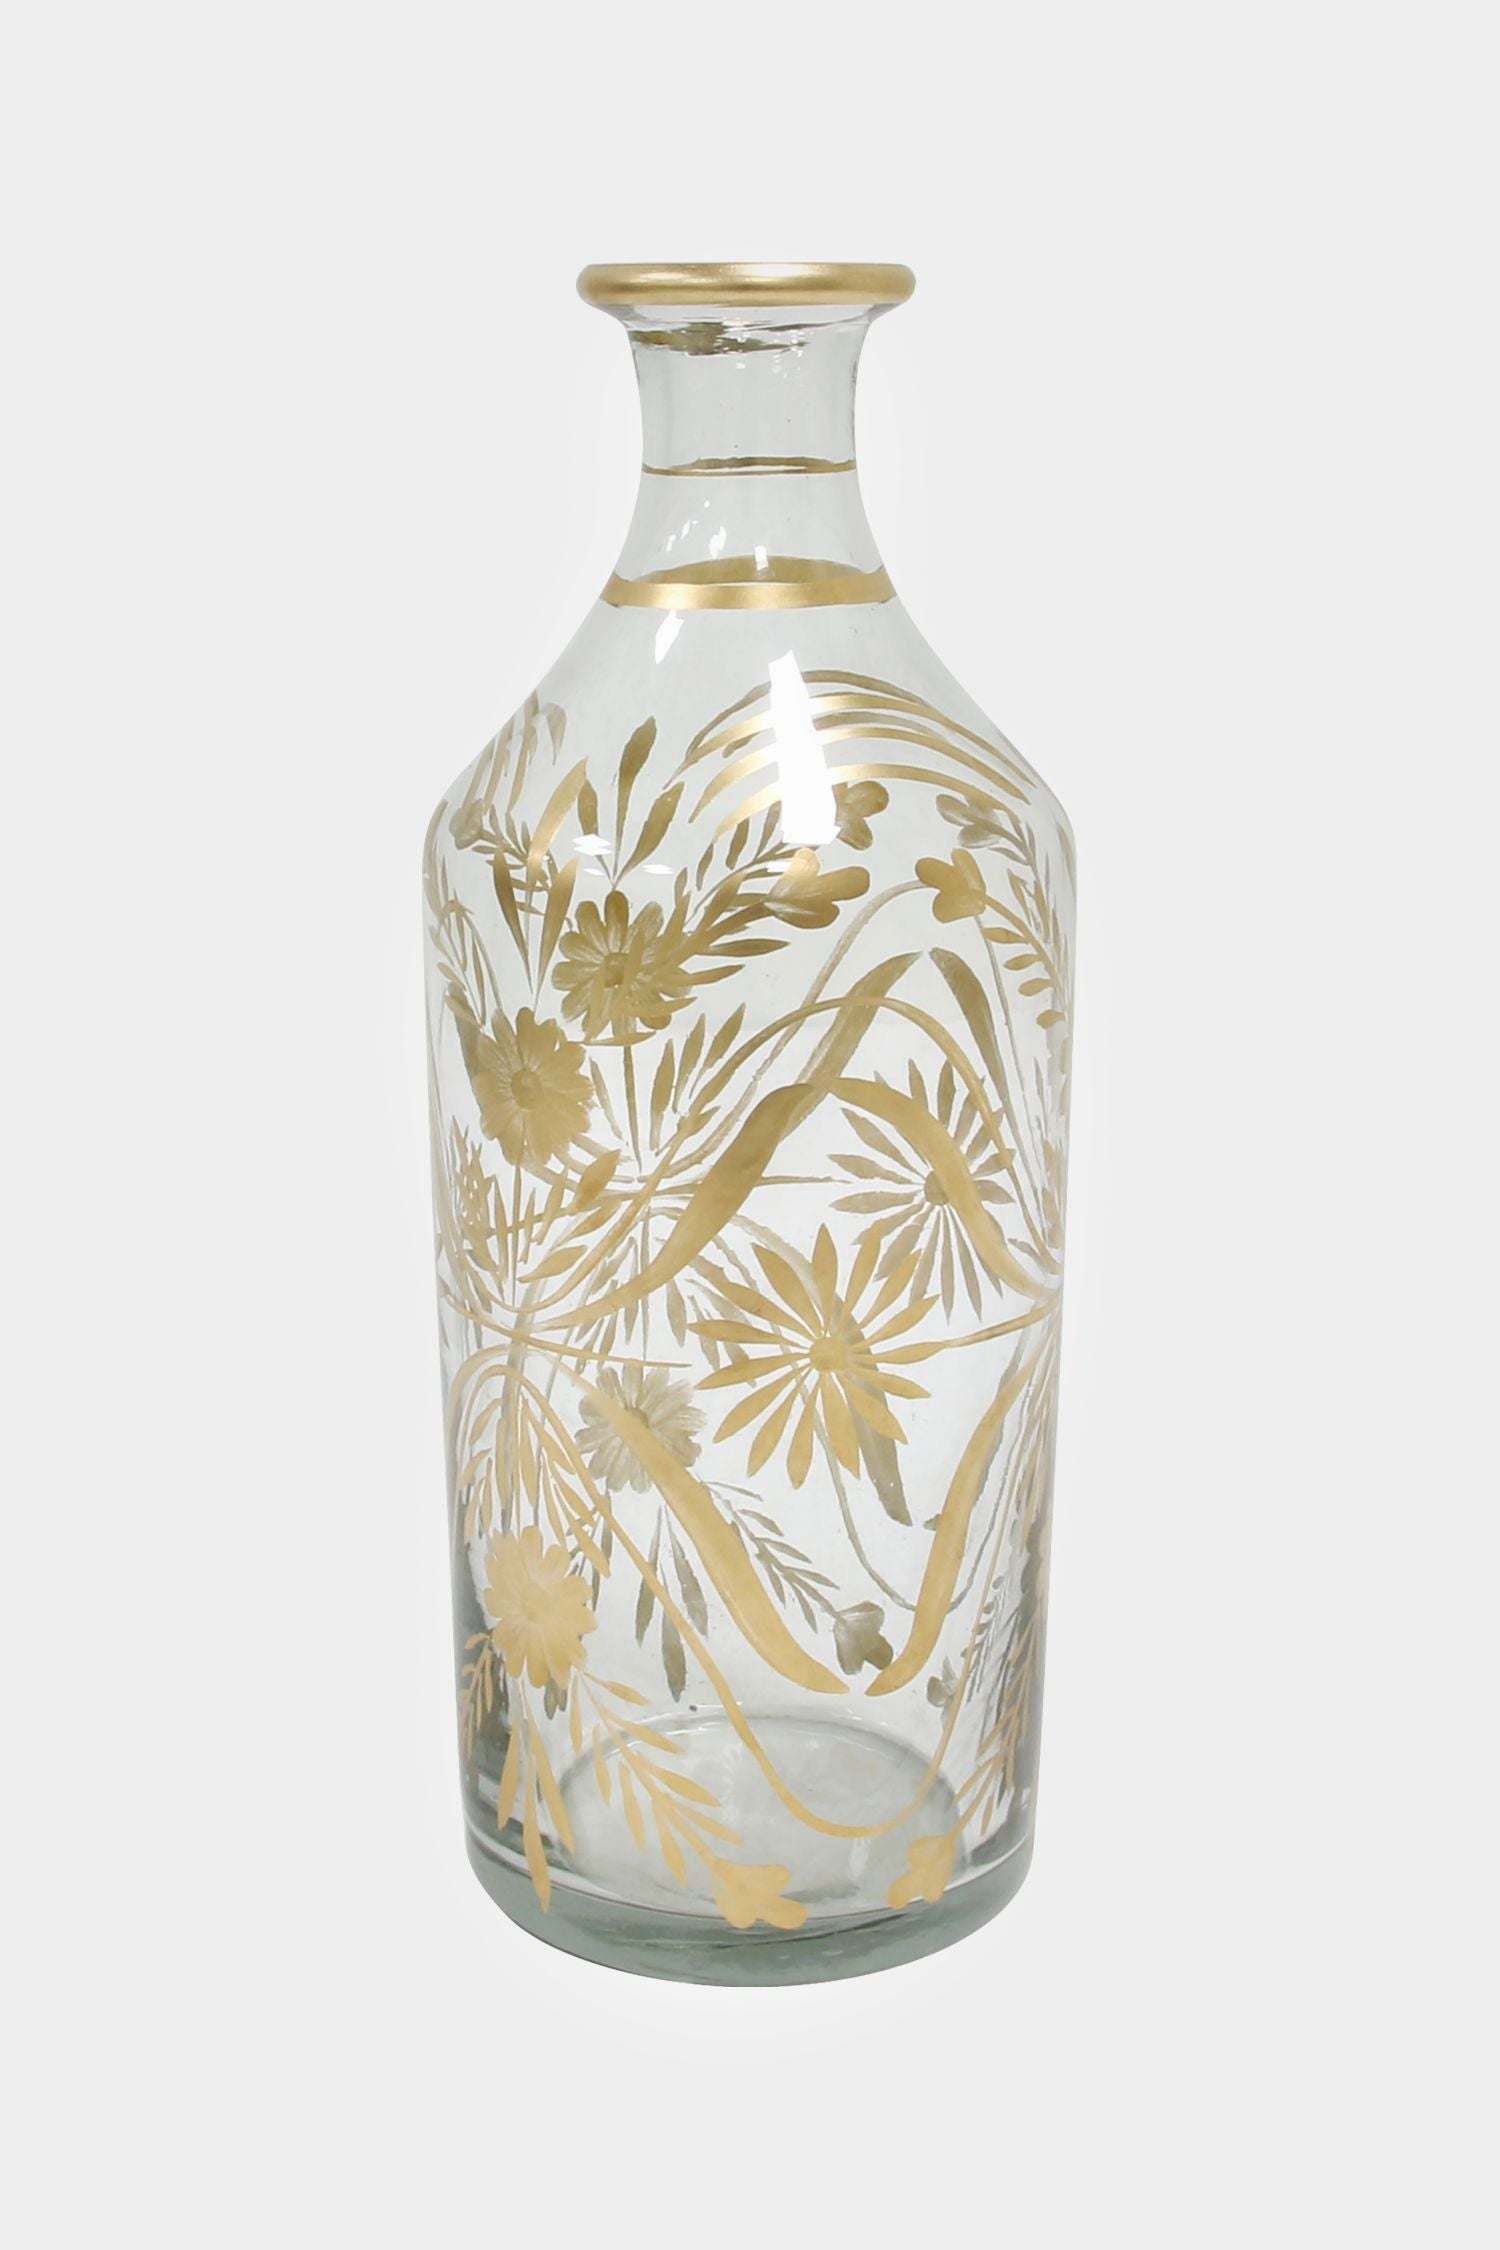 fields-of-gold vase